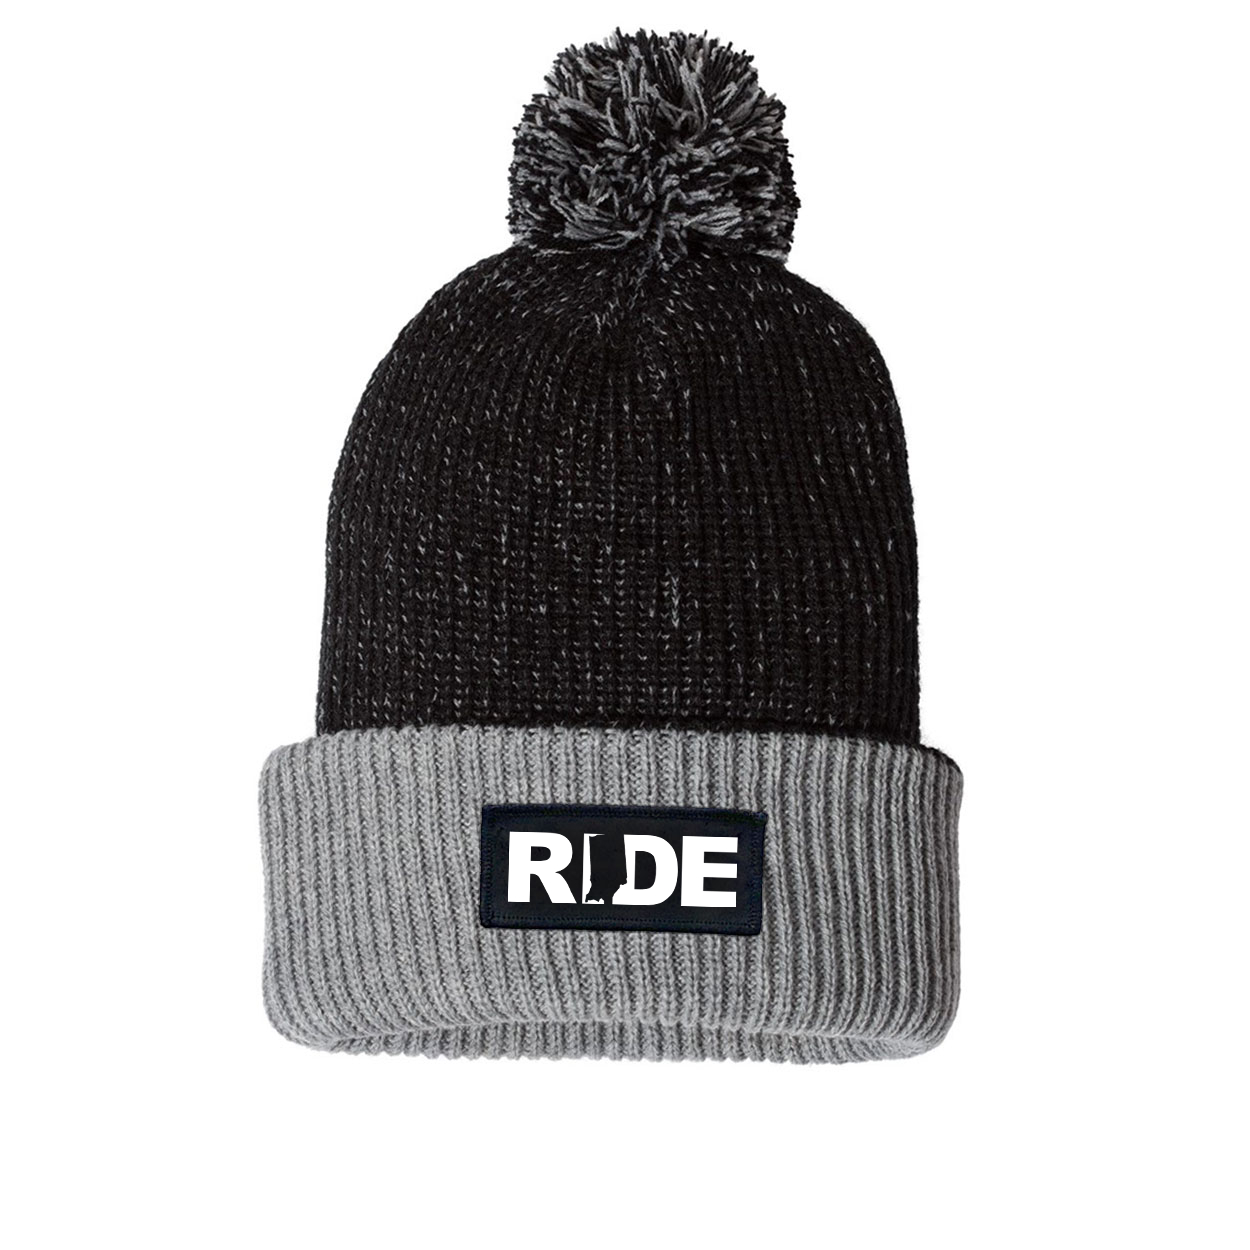 Ride Indiana Night Out Woven Patch Roll Up Pom Knit Beanie Black/Gray (White Logo)